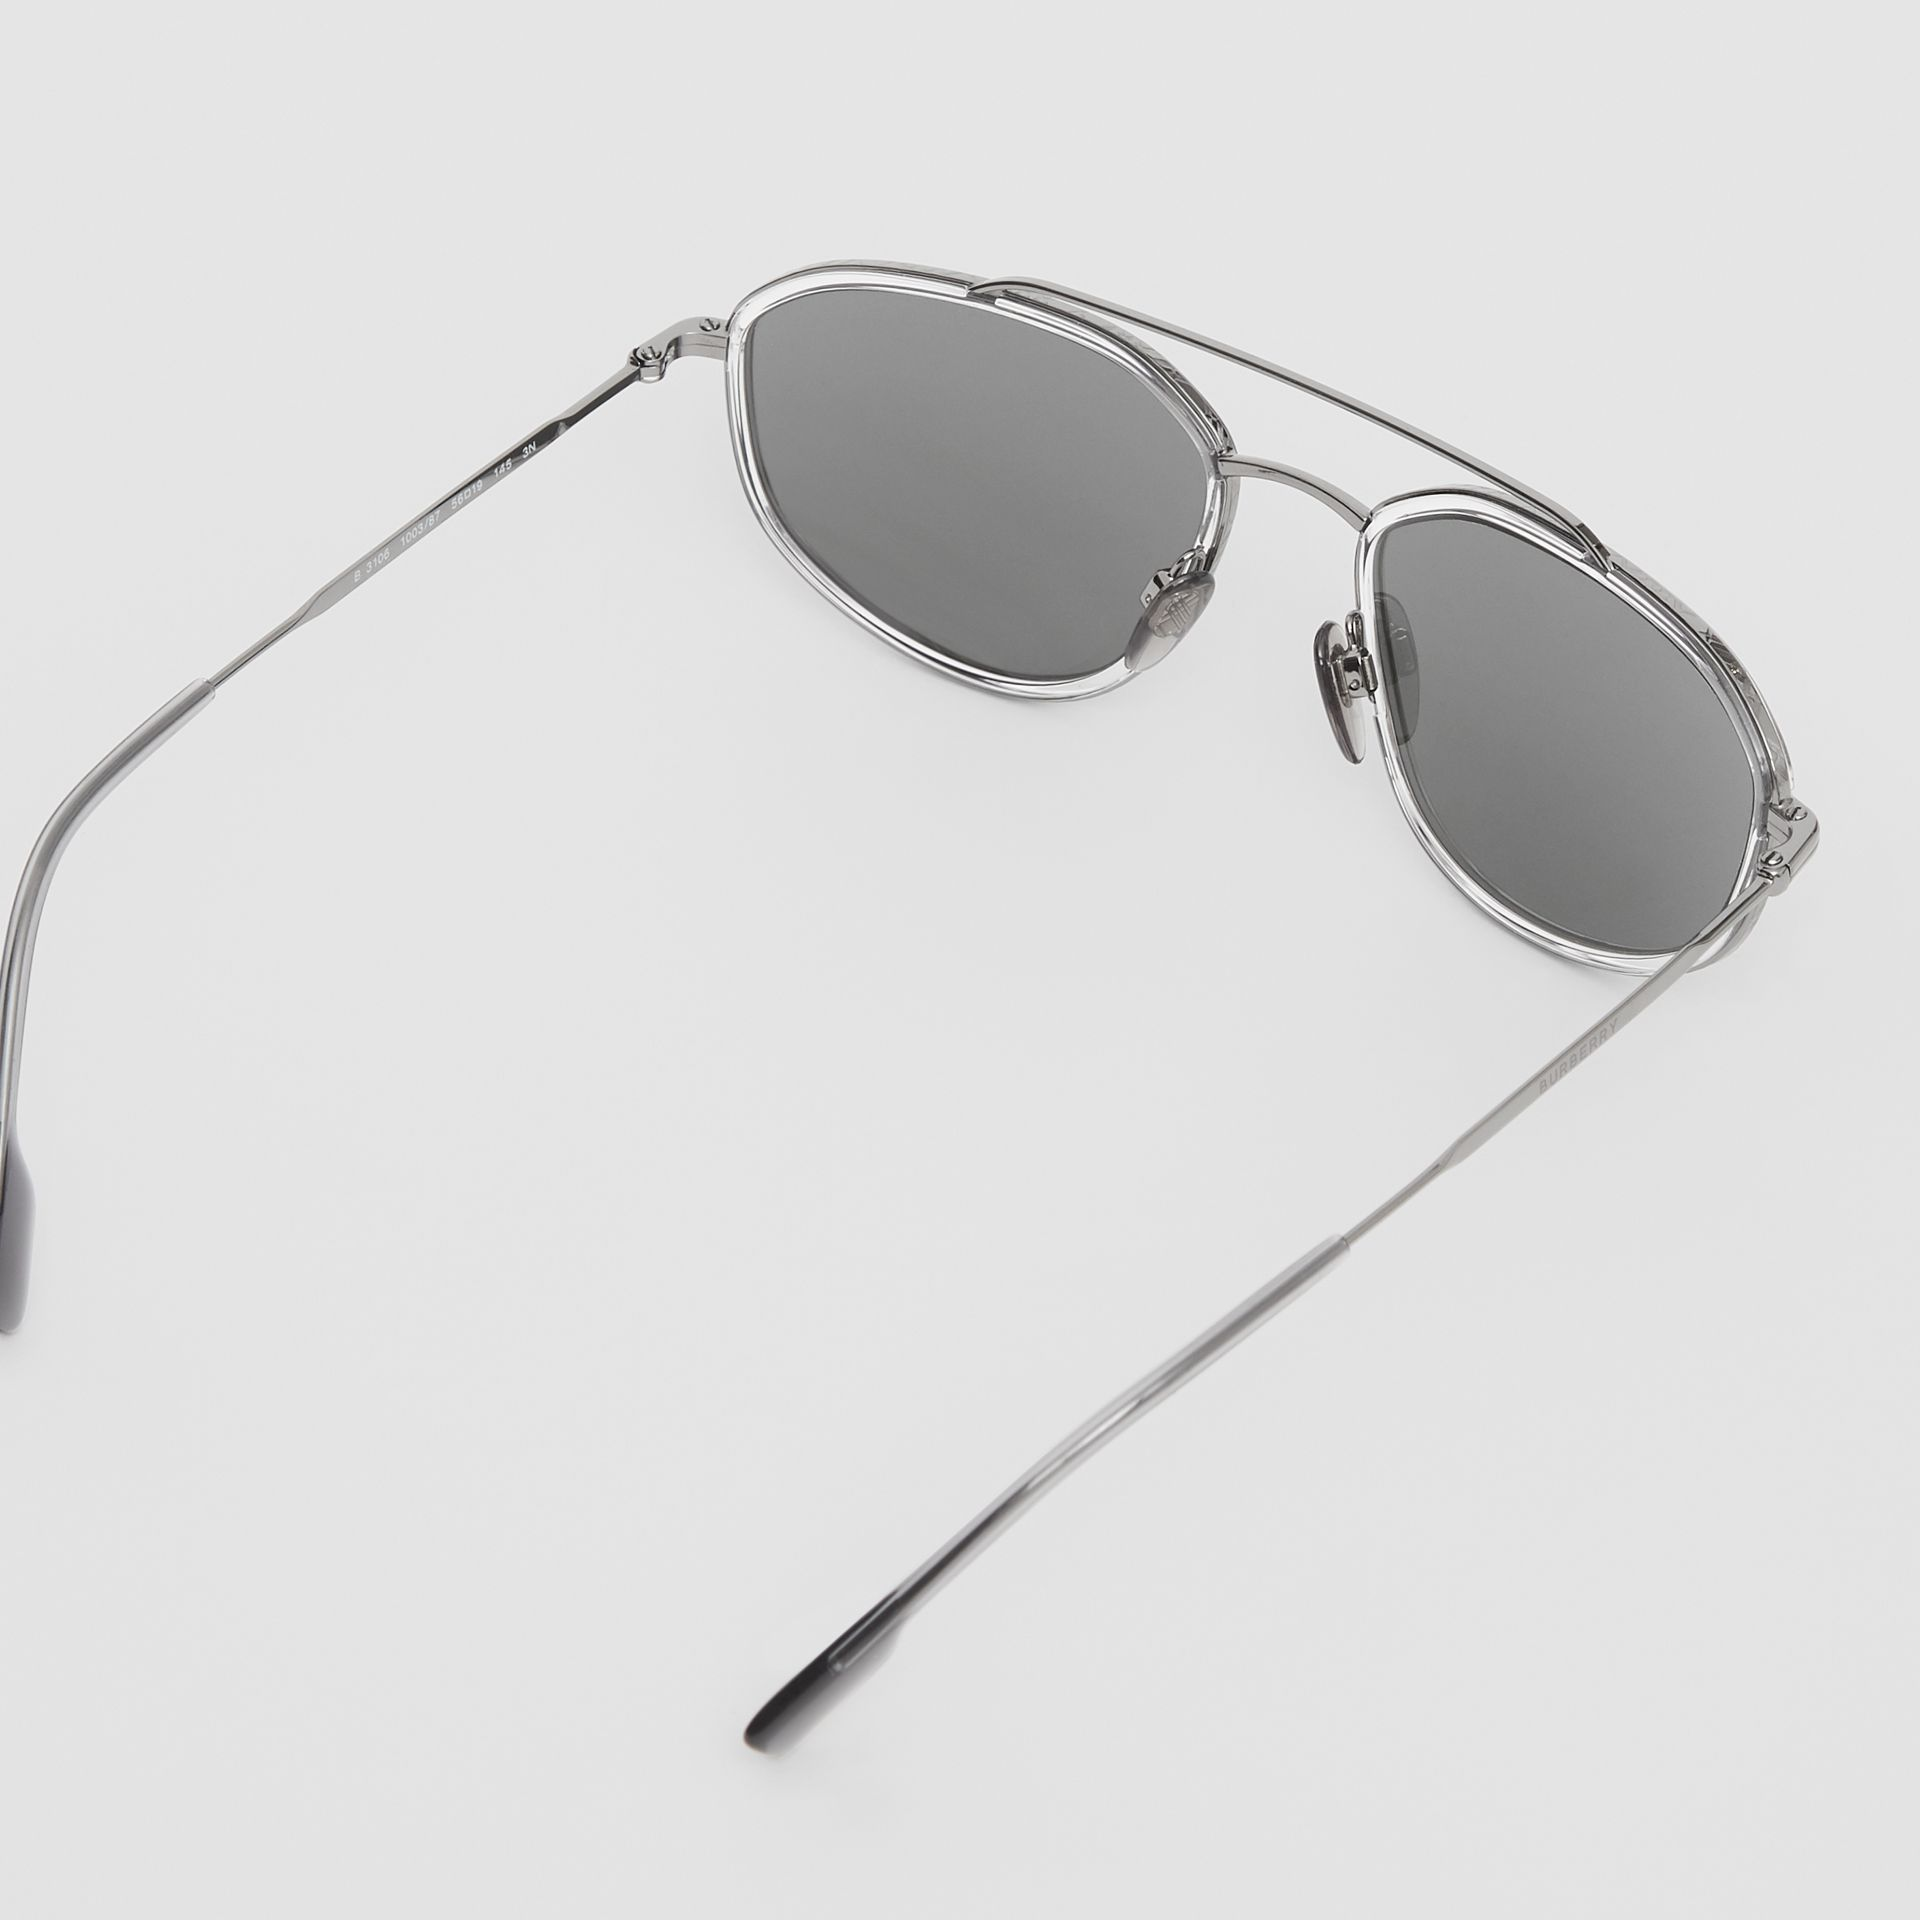 Geometric Navigator Sunglasses in Gunmetal Grey - Men | Burberry - gallery image 4